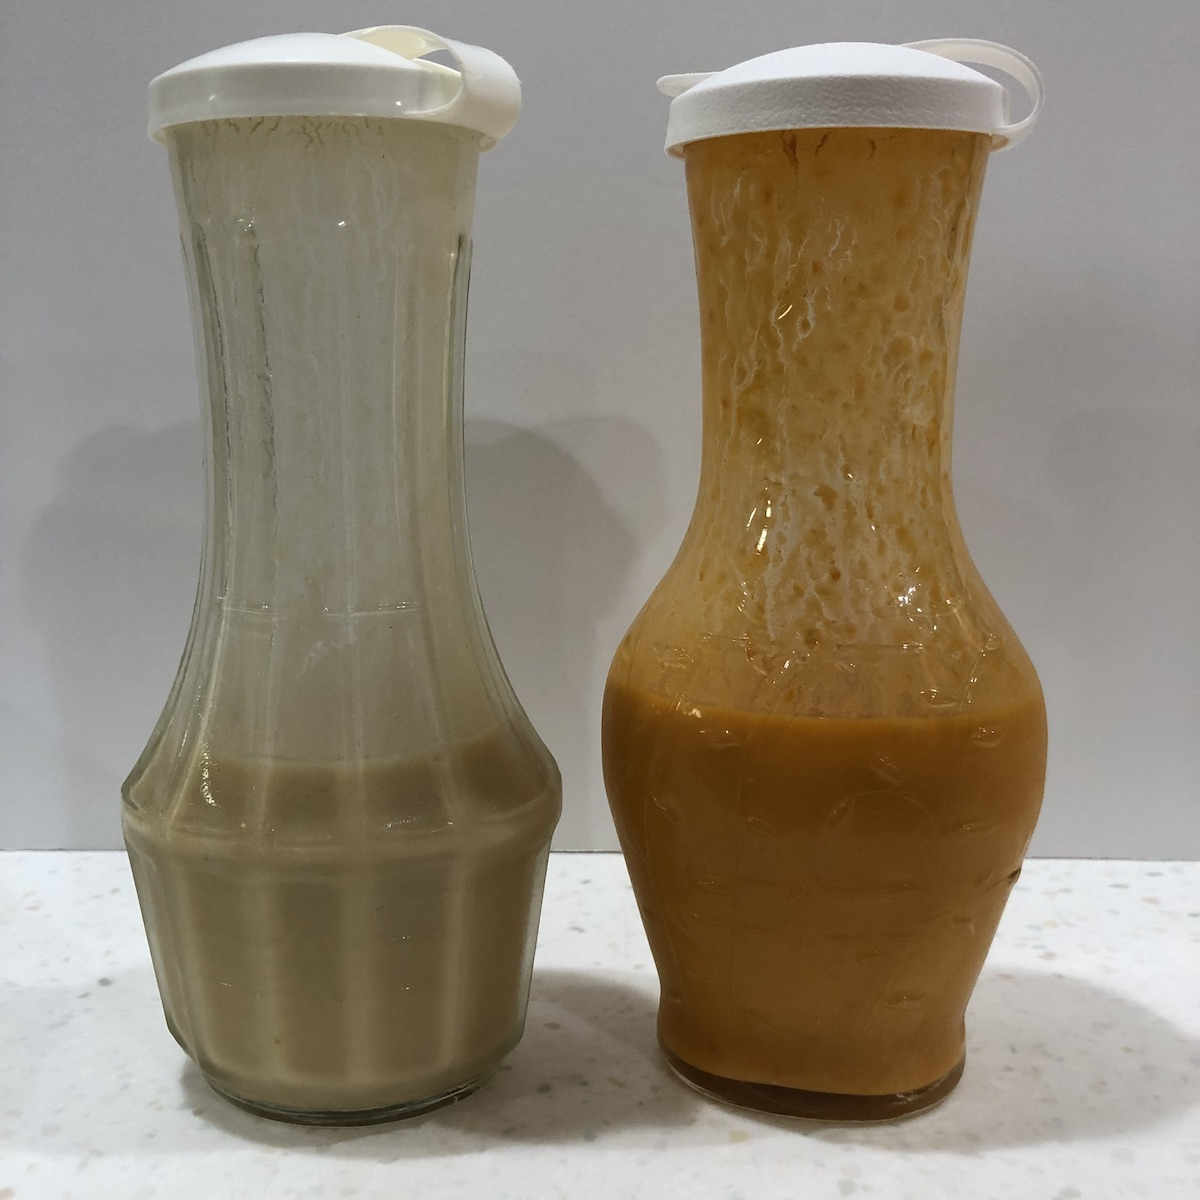 two salad dressings in two containers